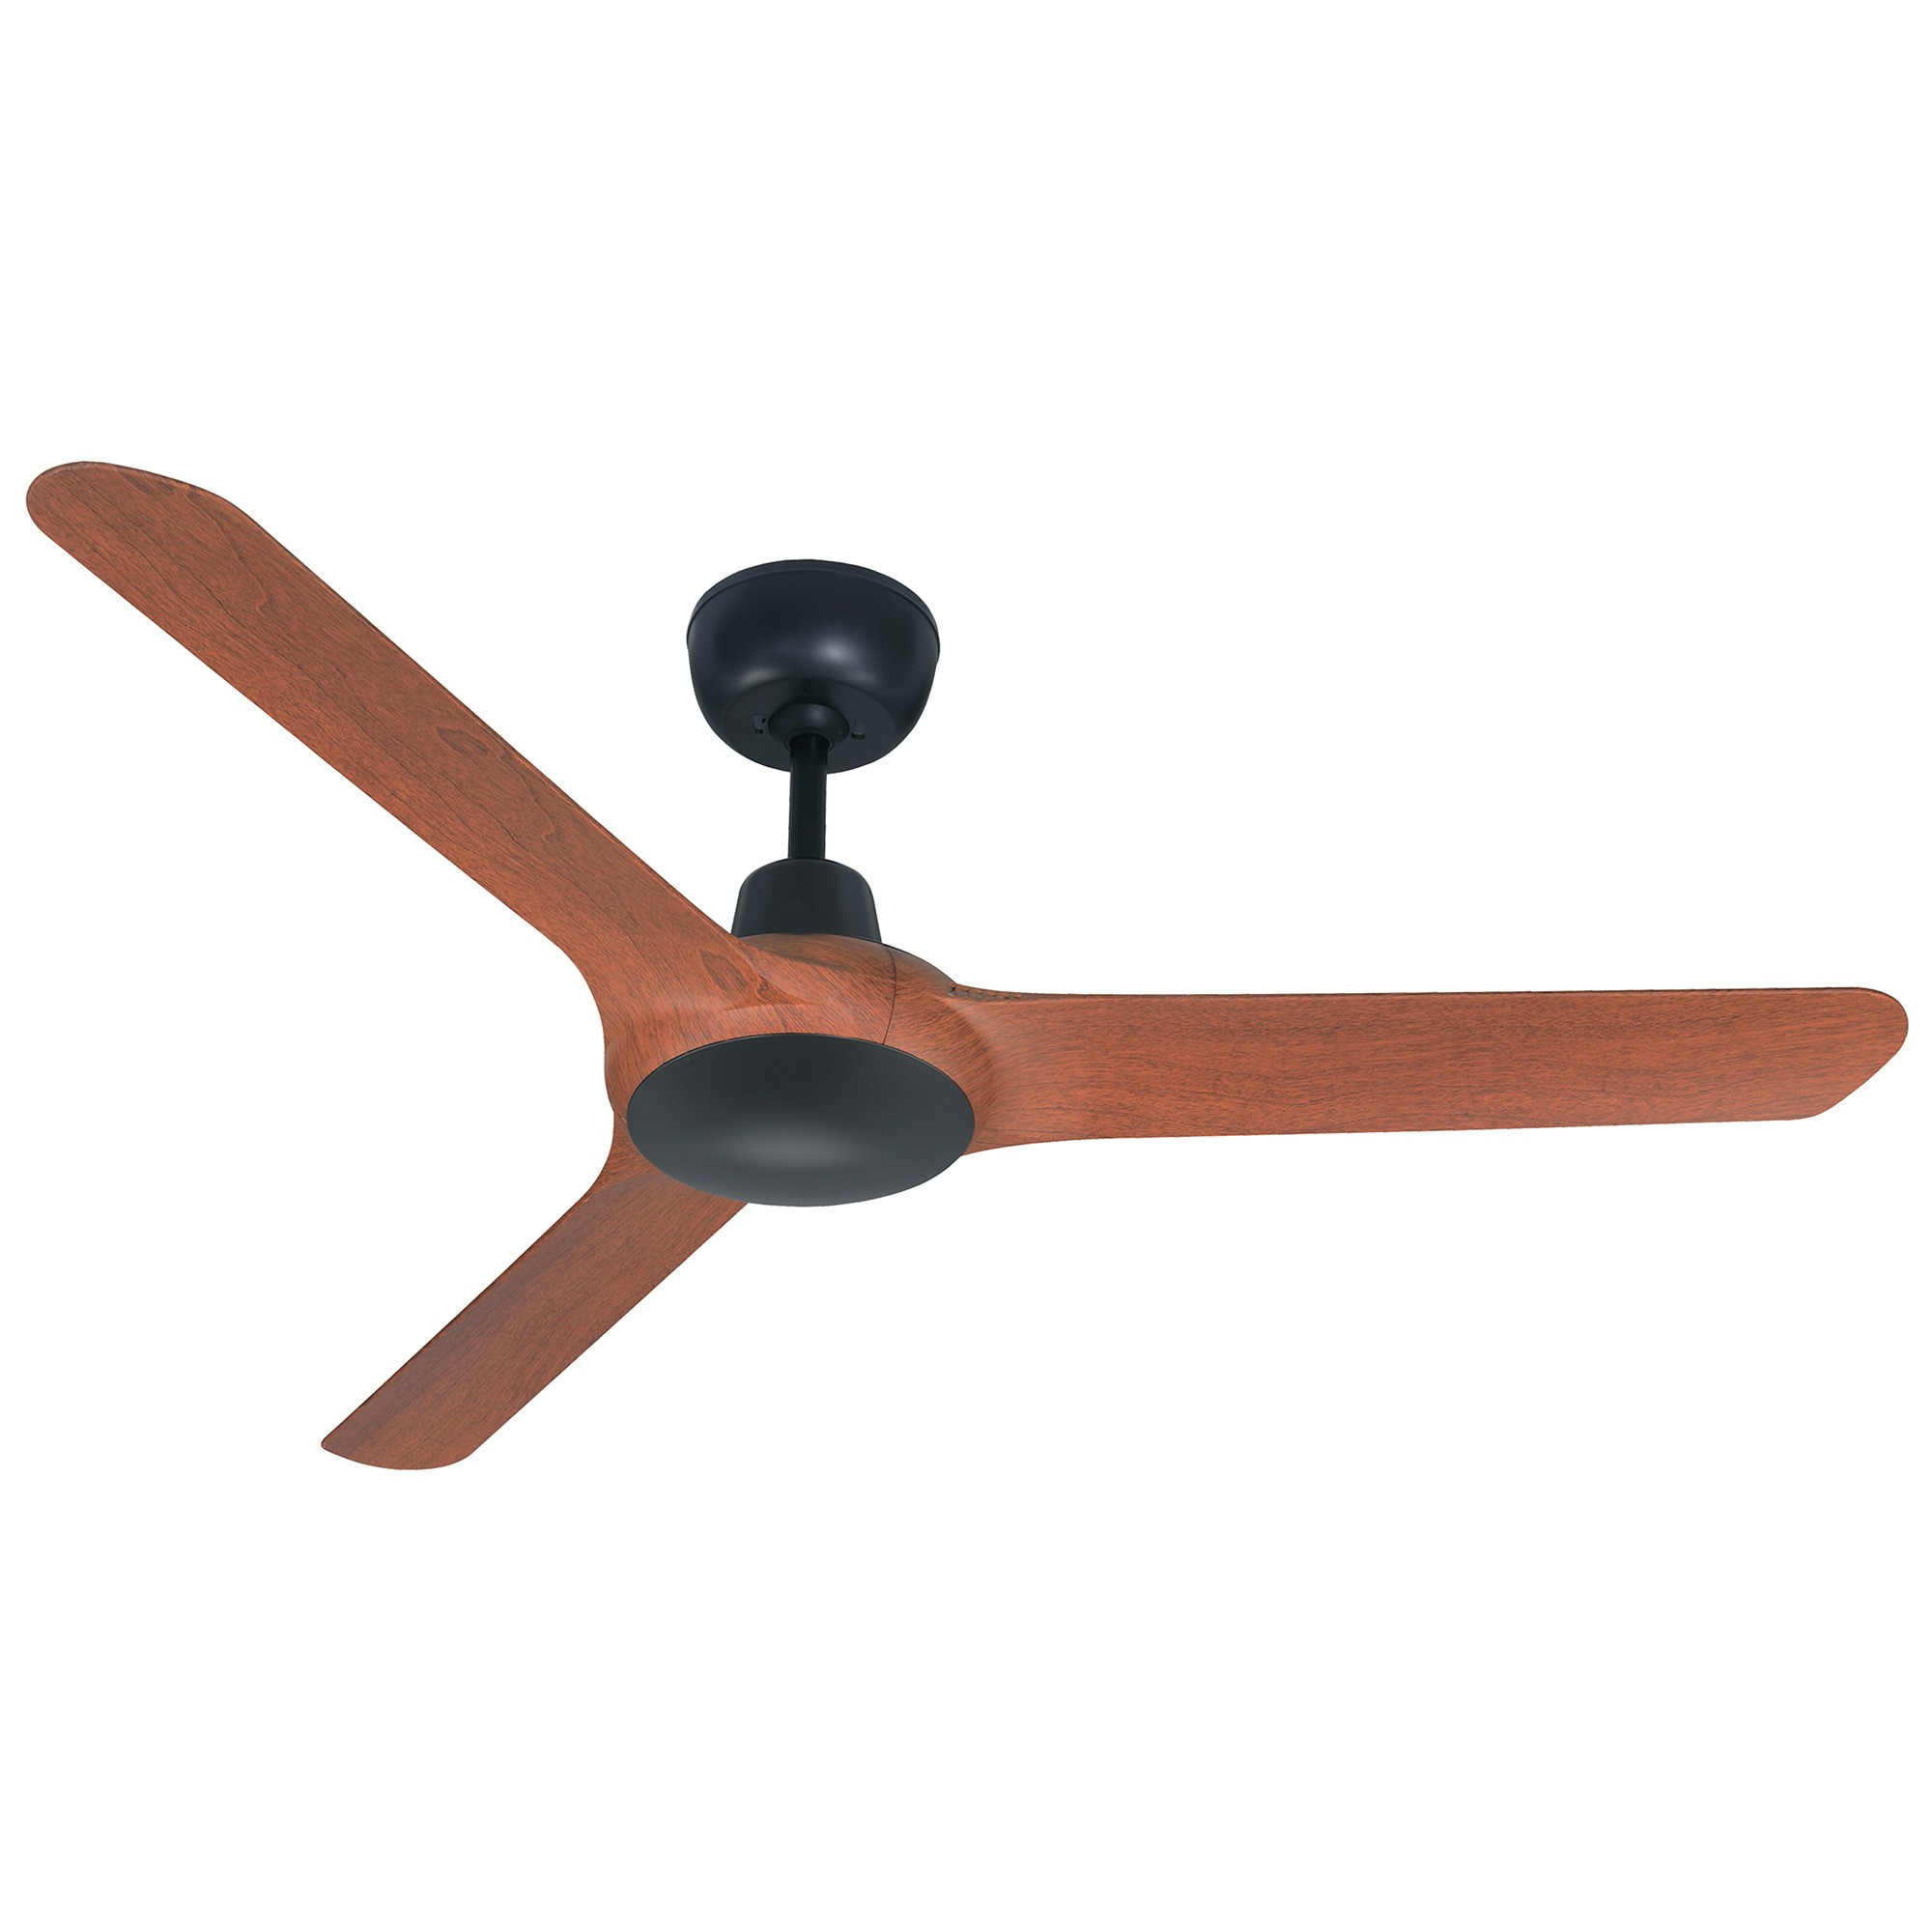 Ventair Spyda Commercial Grade Indoor / Outdoor 3 Blade Ceiling Fan, 157cm/62